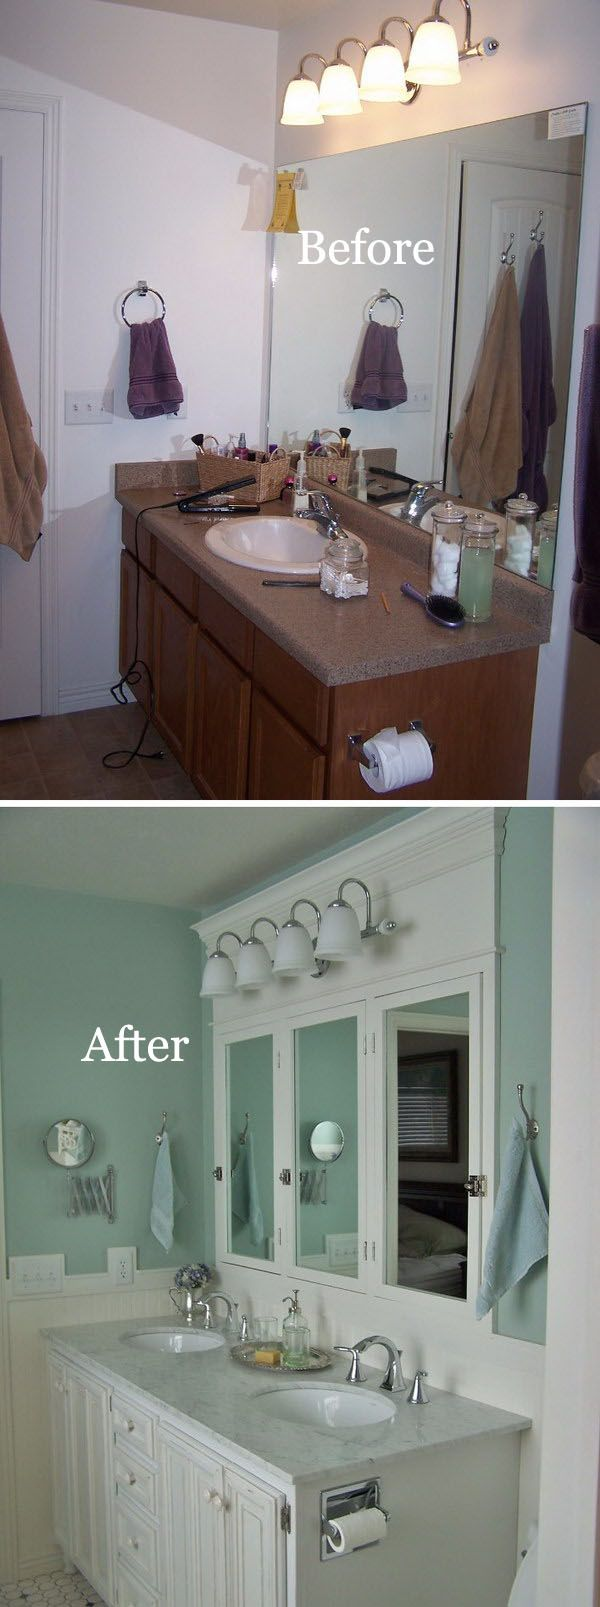 Cartwright Medicine Cabinet 25 Best Ideas About Medicine Cabinets With Lights On Pinterest